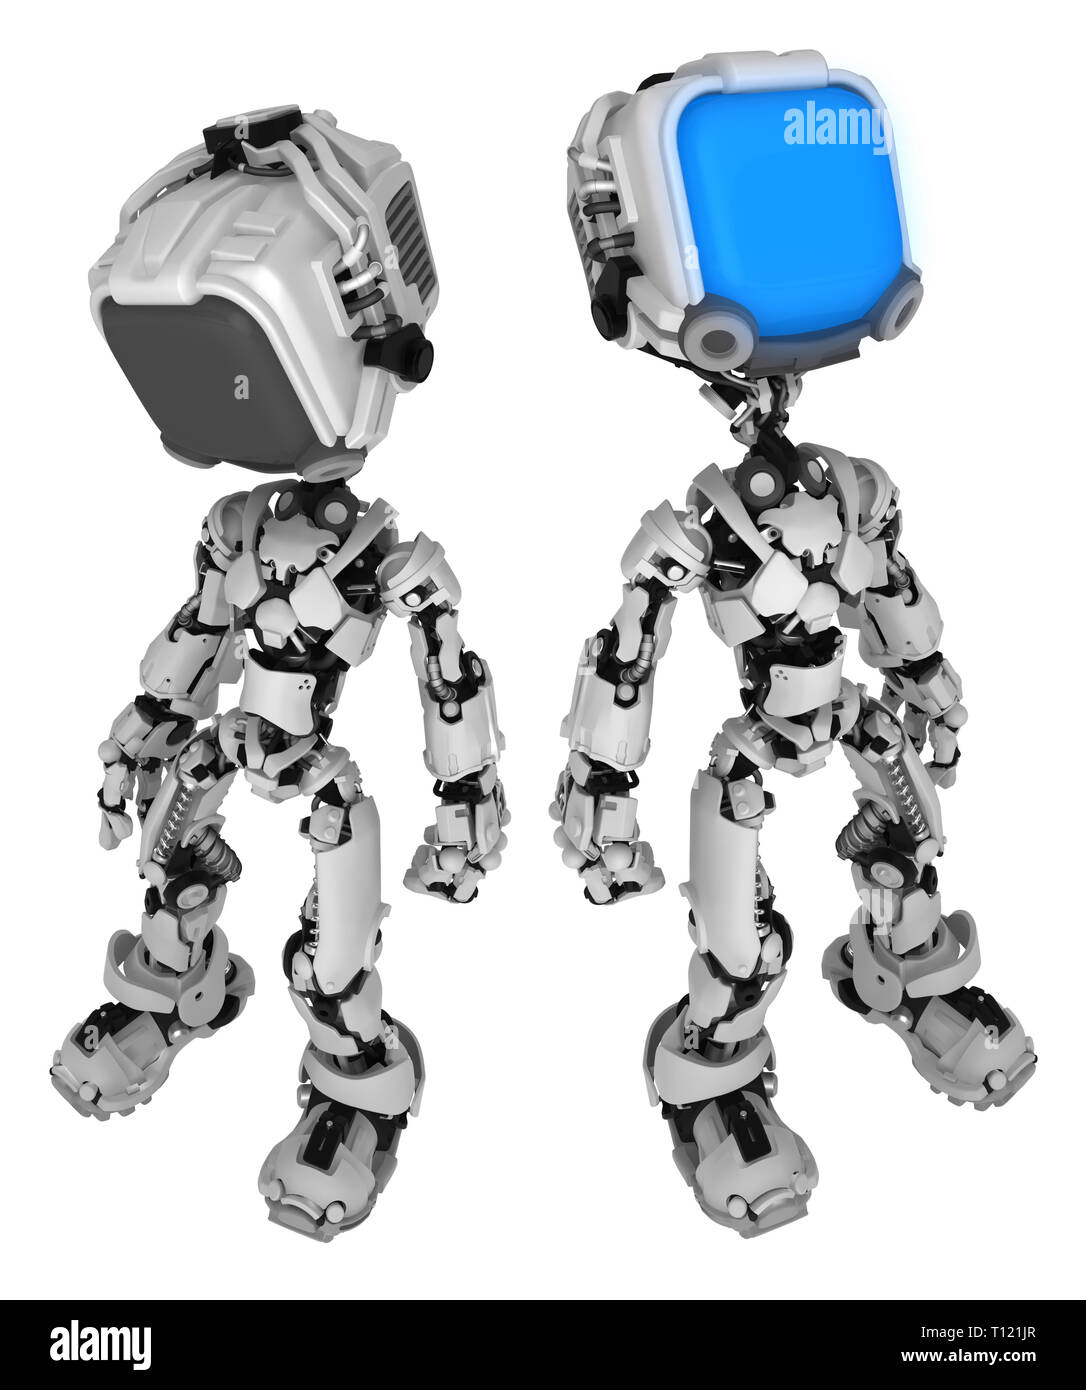 Screen robot figure character poses activating, 3d illustration, vertical, isolated - Stock Image